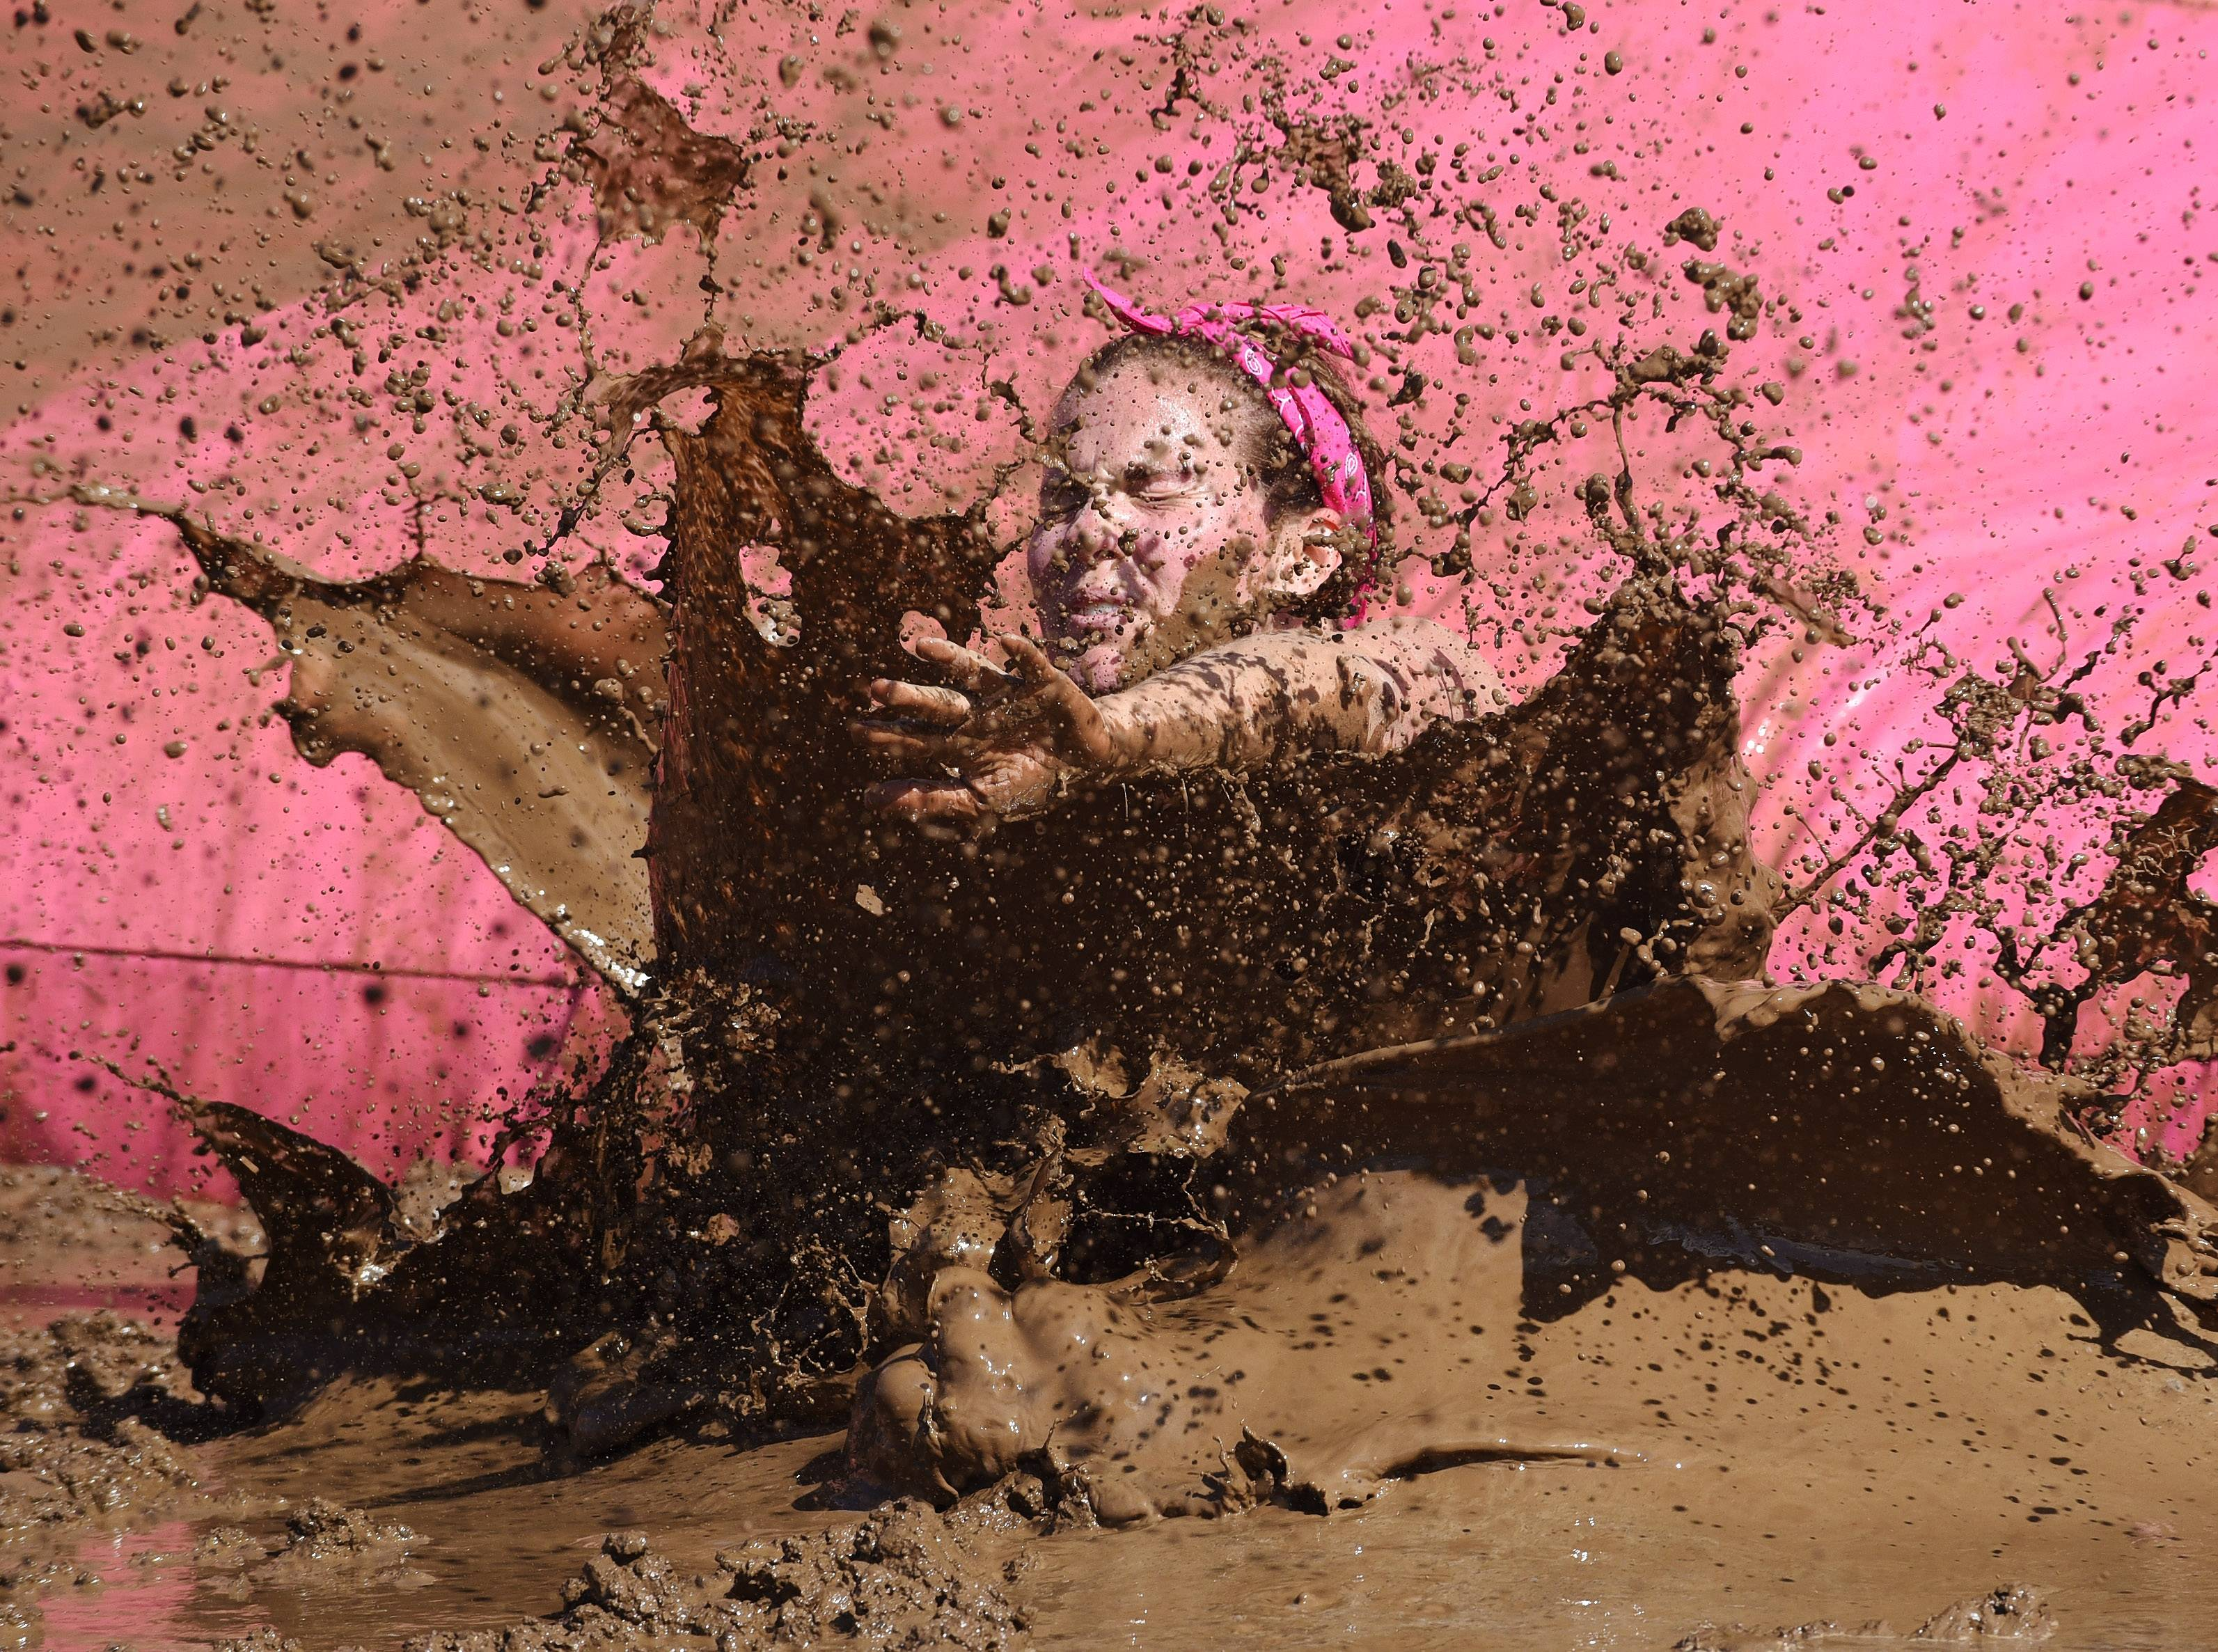 Danielle McKenna of Volo splashes down during the Dirty Girl Mud Run at the Sears Centre in Hoffman Estates Saturday.